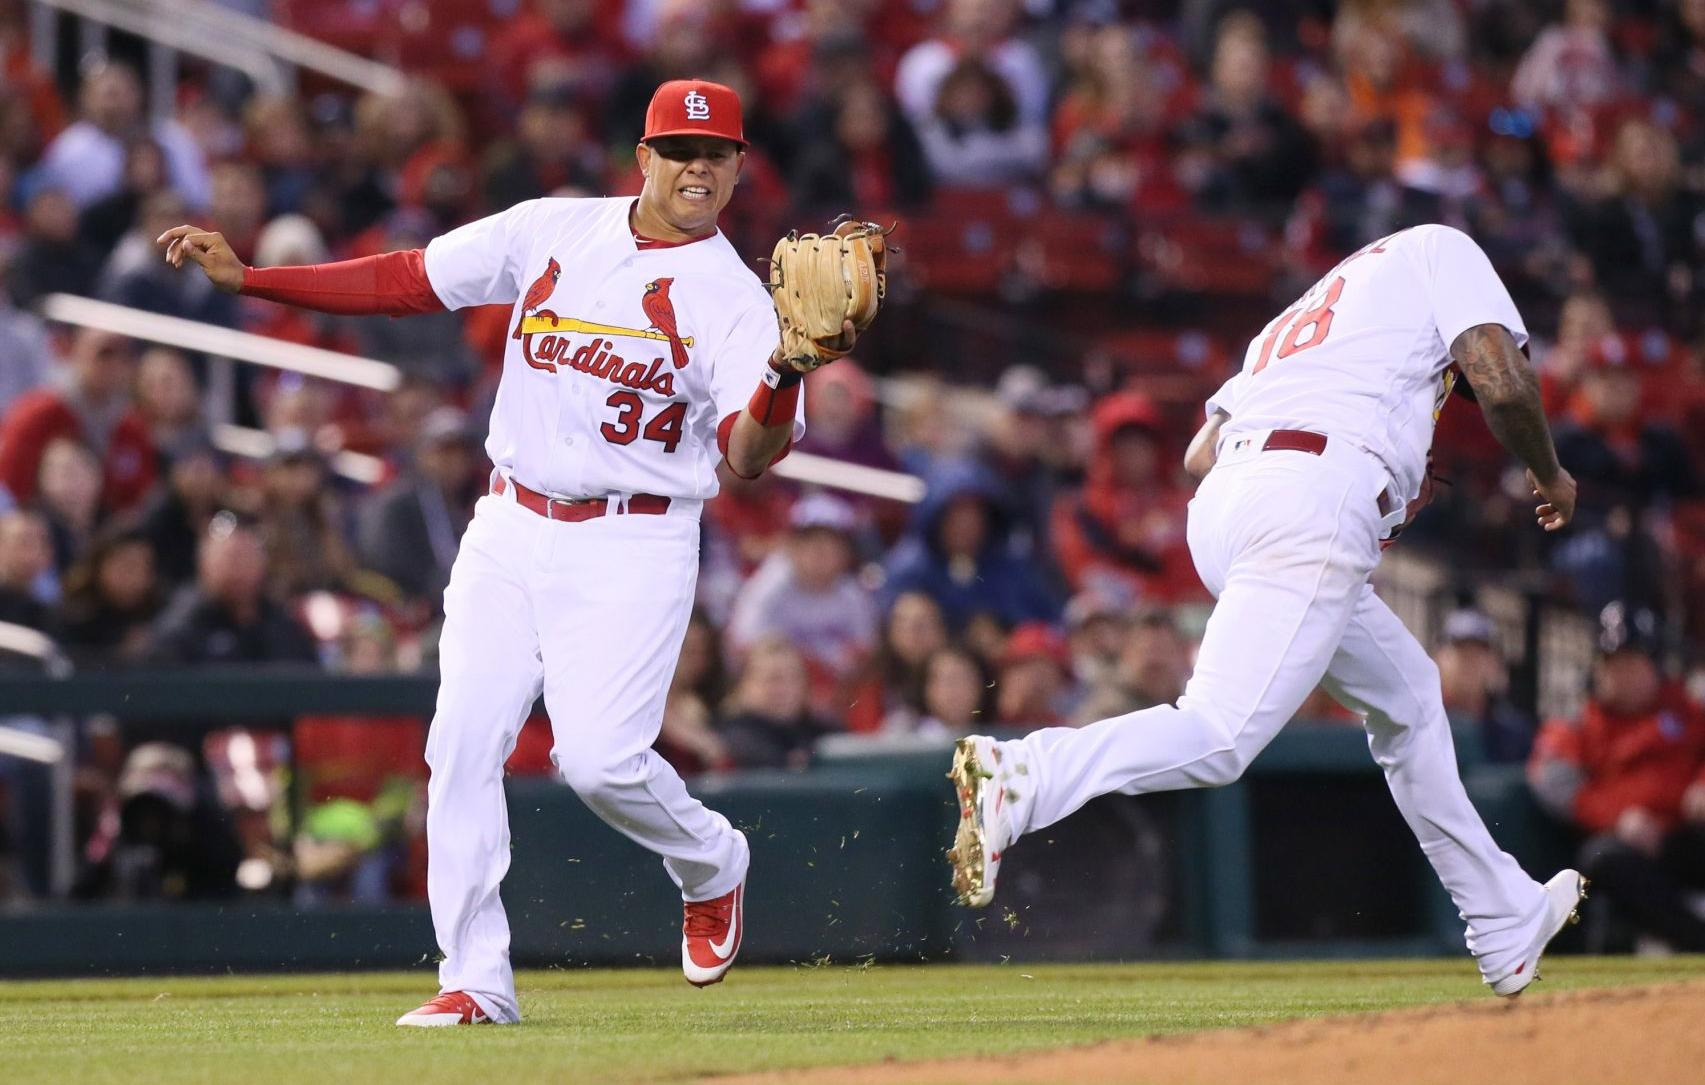 MOVING ON FROM GYORKO?